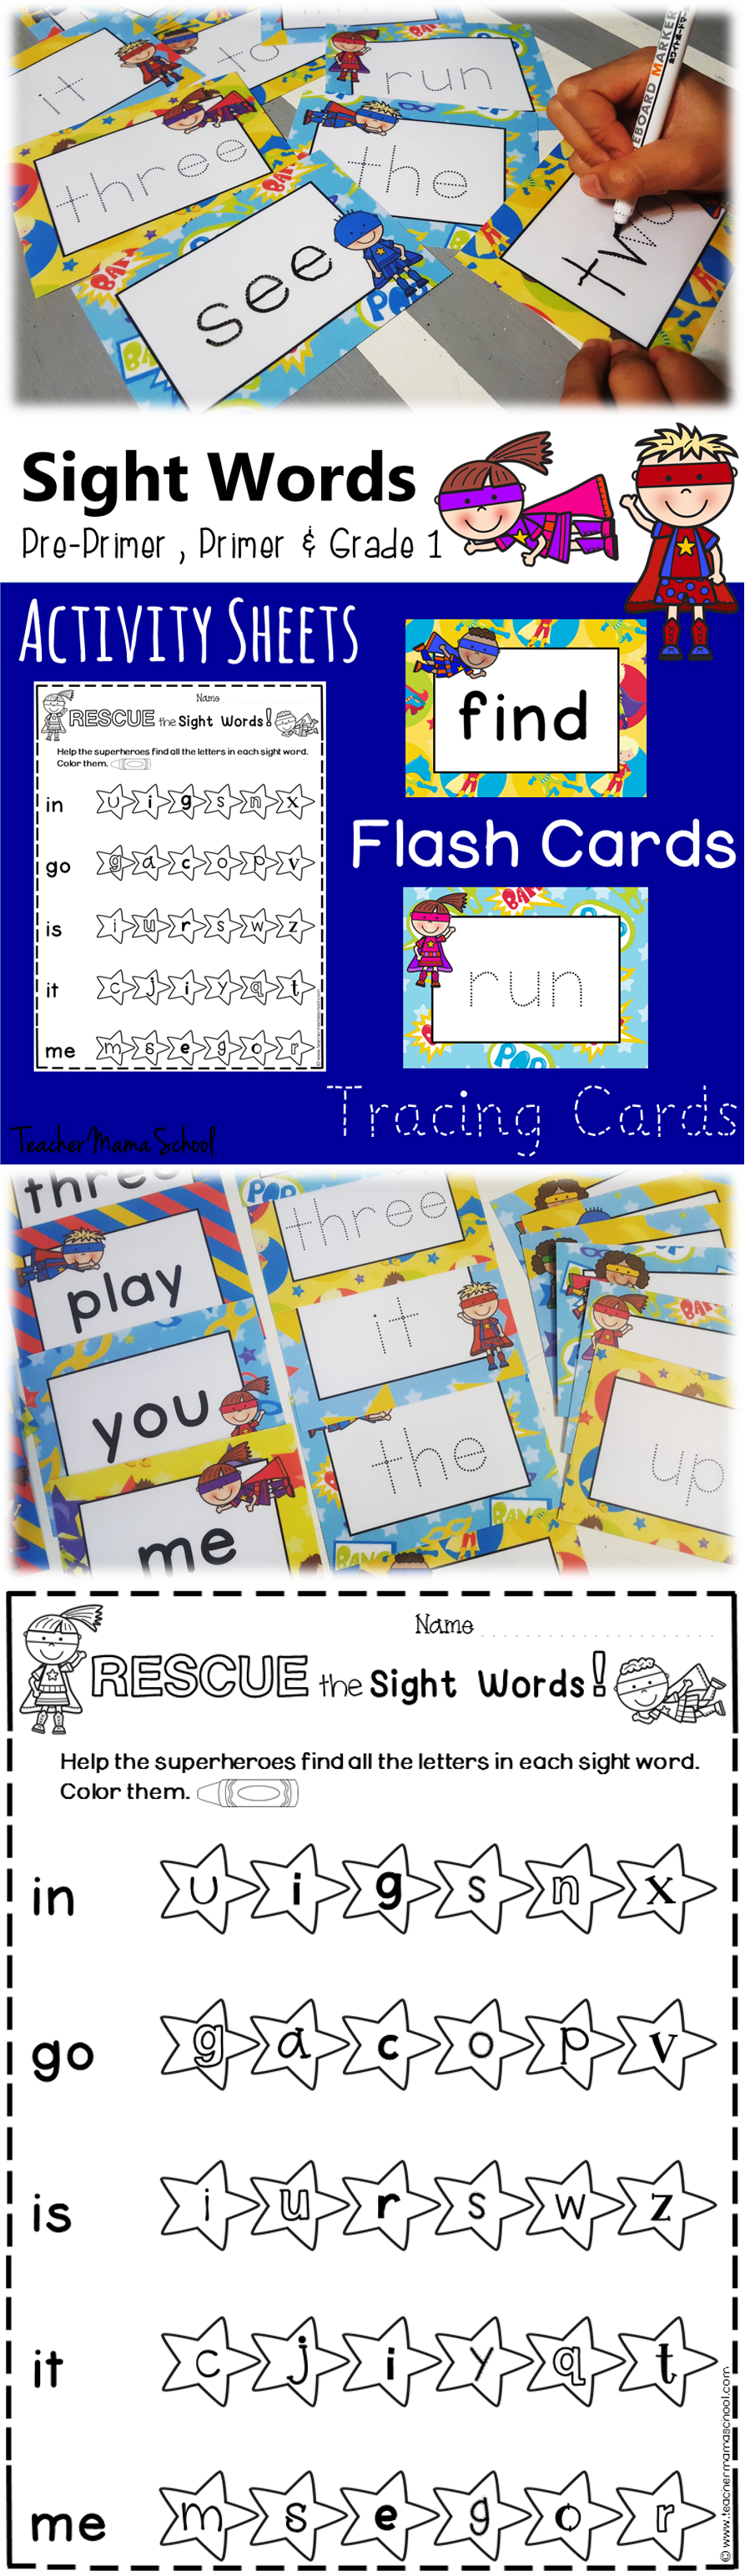 Sight Words Activity Sheet Flash Cards Tracing Cards : Superhero Theme